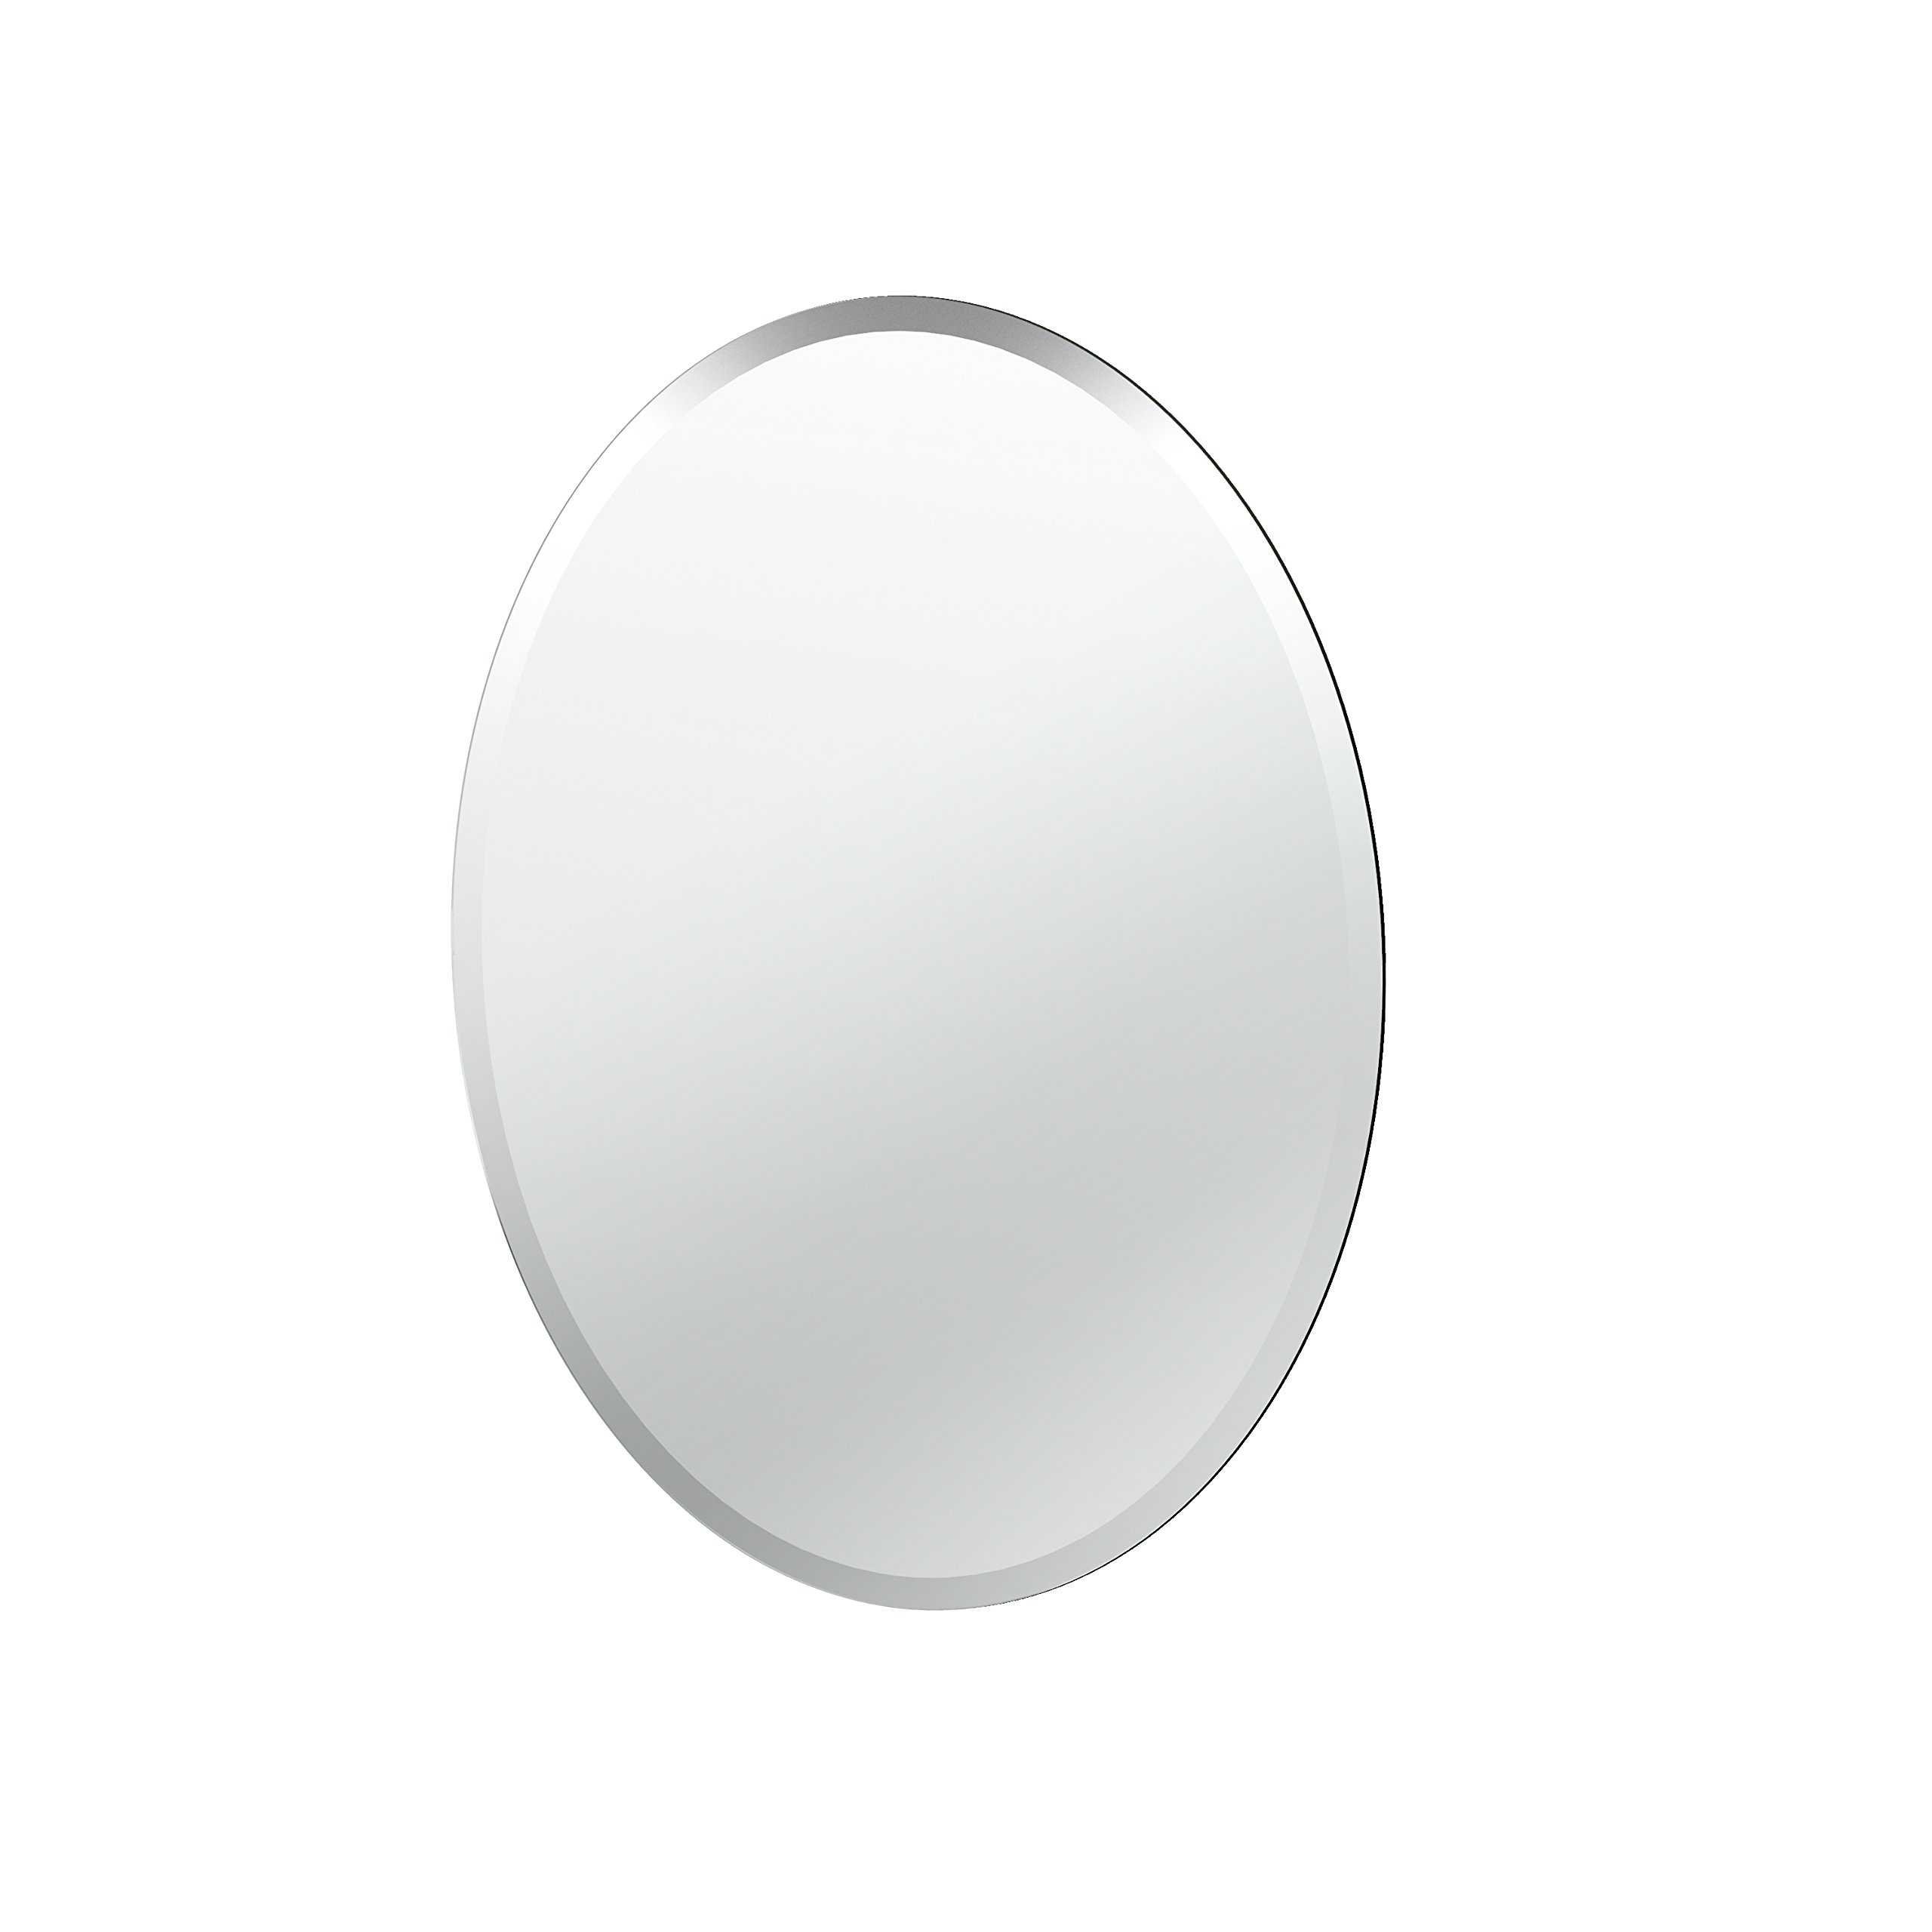 Gatco 1800 Oval Flush Mount Frameless Mirror, 26.5-inch